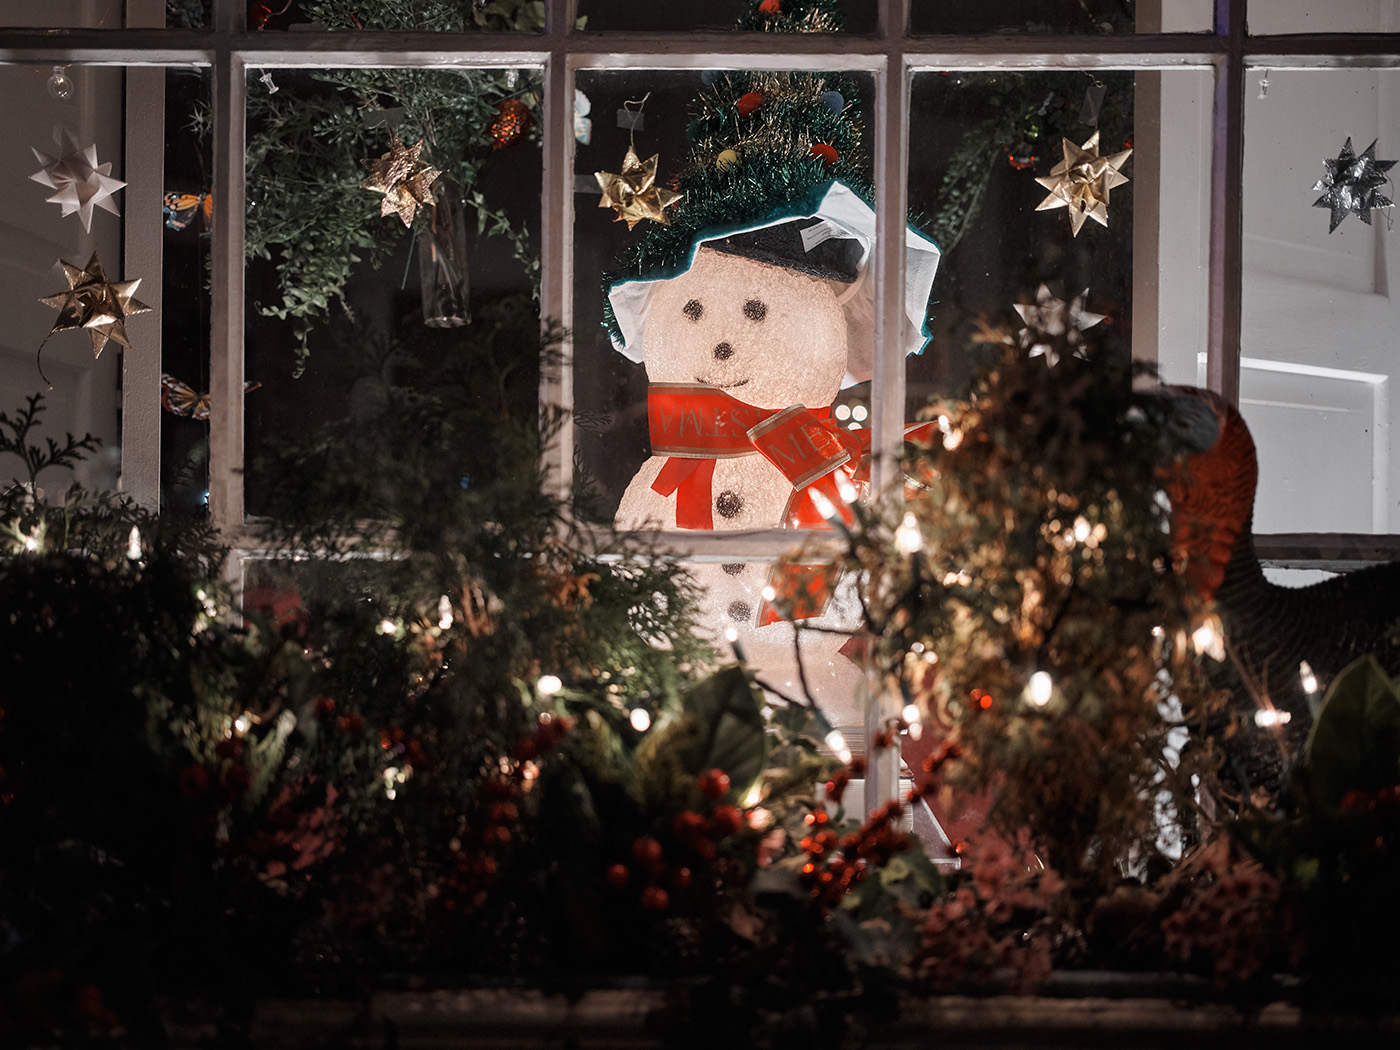 Snowman, GFX50R - 45 mm - f/2.8 - 1/100s - ISO 4000 (click to enlarge)